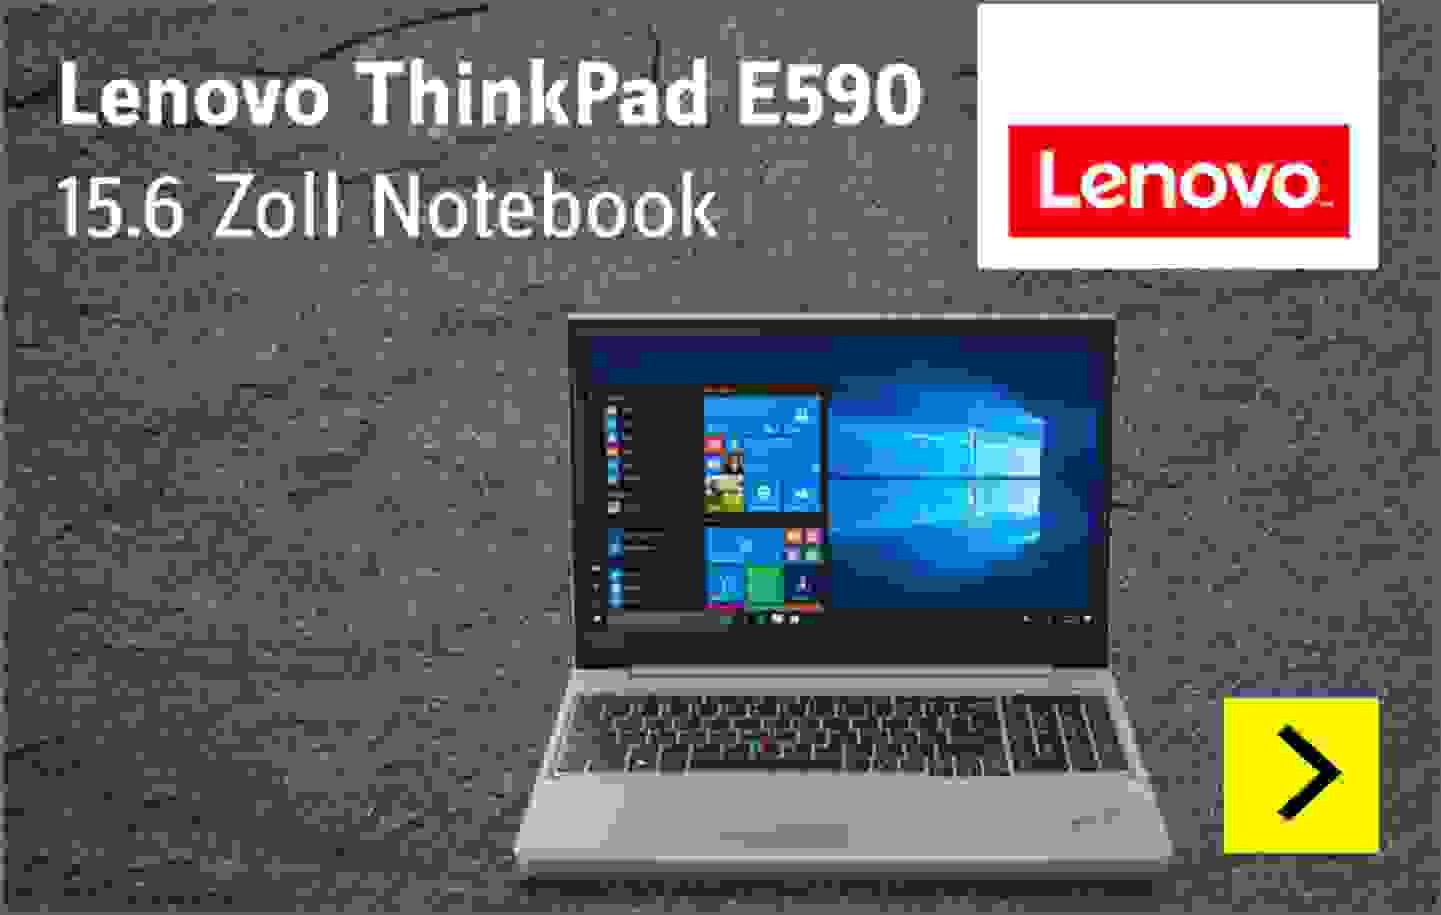 Lenovo ThinkPad E590 15.6 Zoll Notebook